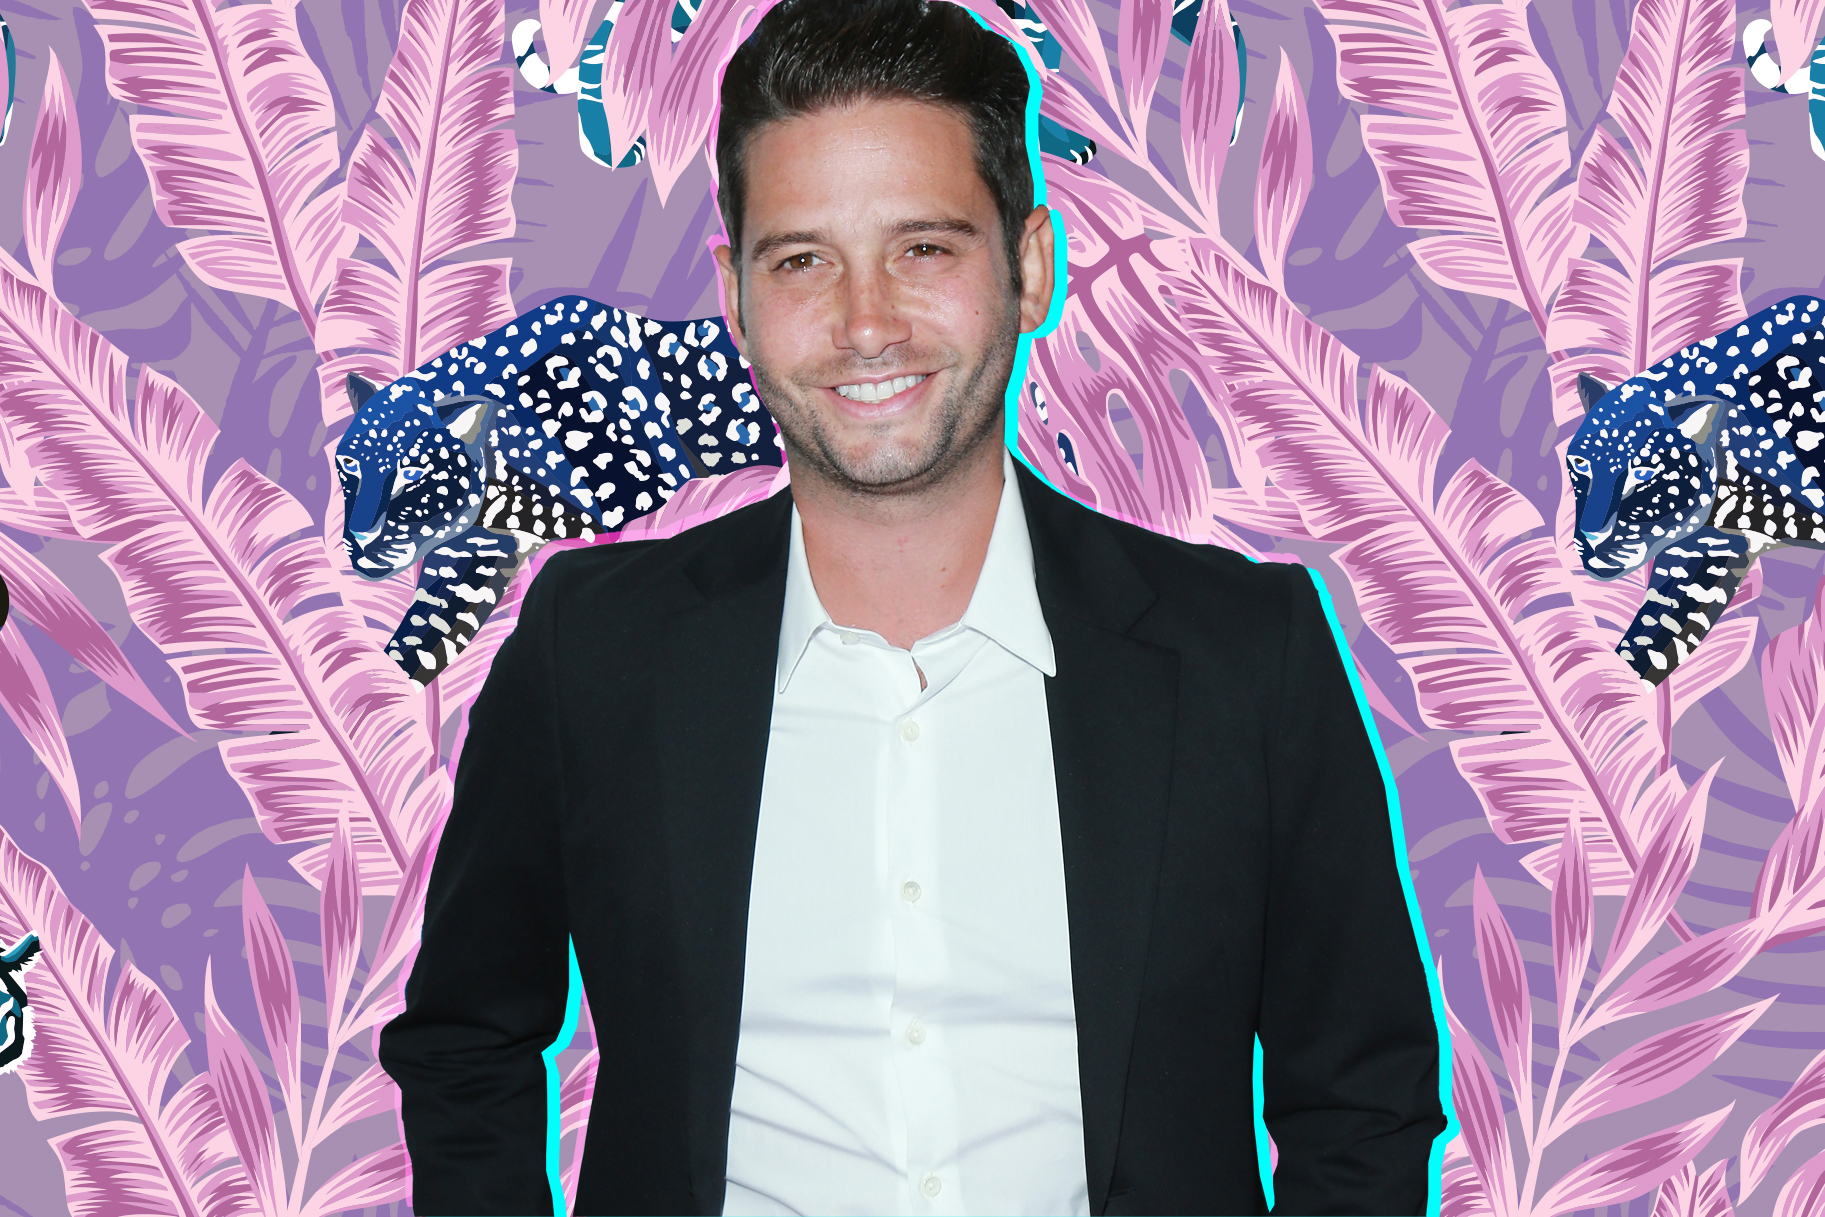 Home Design Josh Flagg Reno